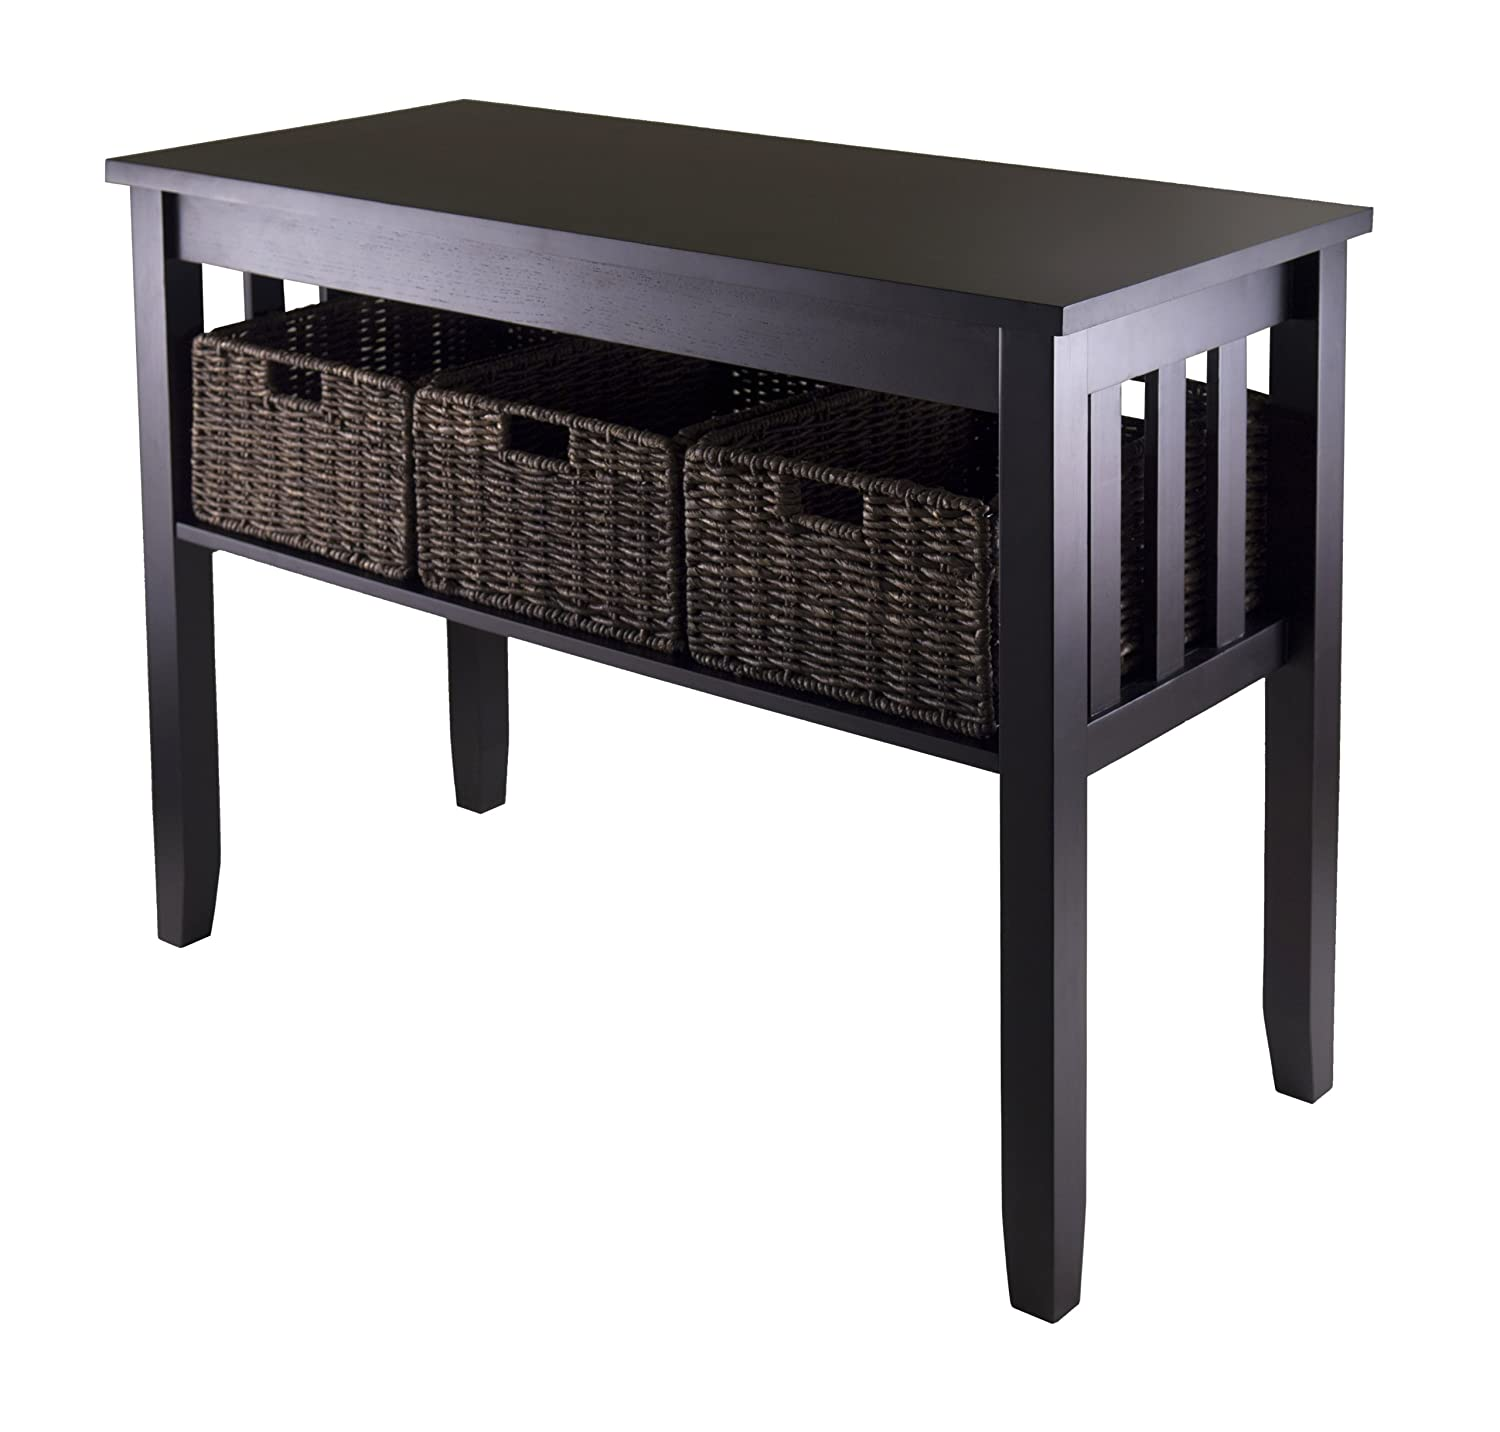 sofa table storage flexform bezug best contemporary entryway console tables olivia 39s place